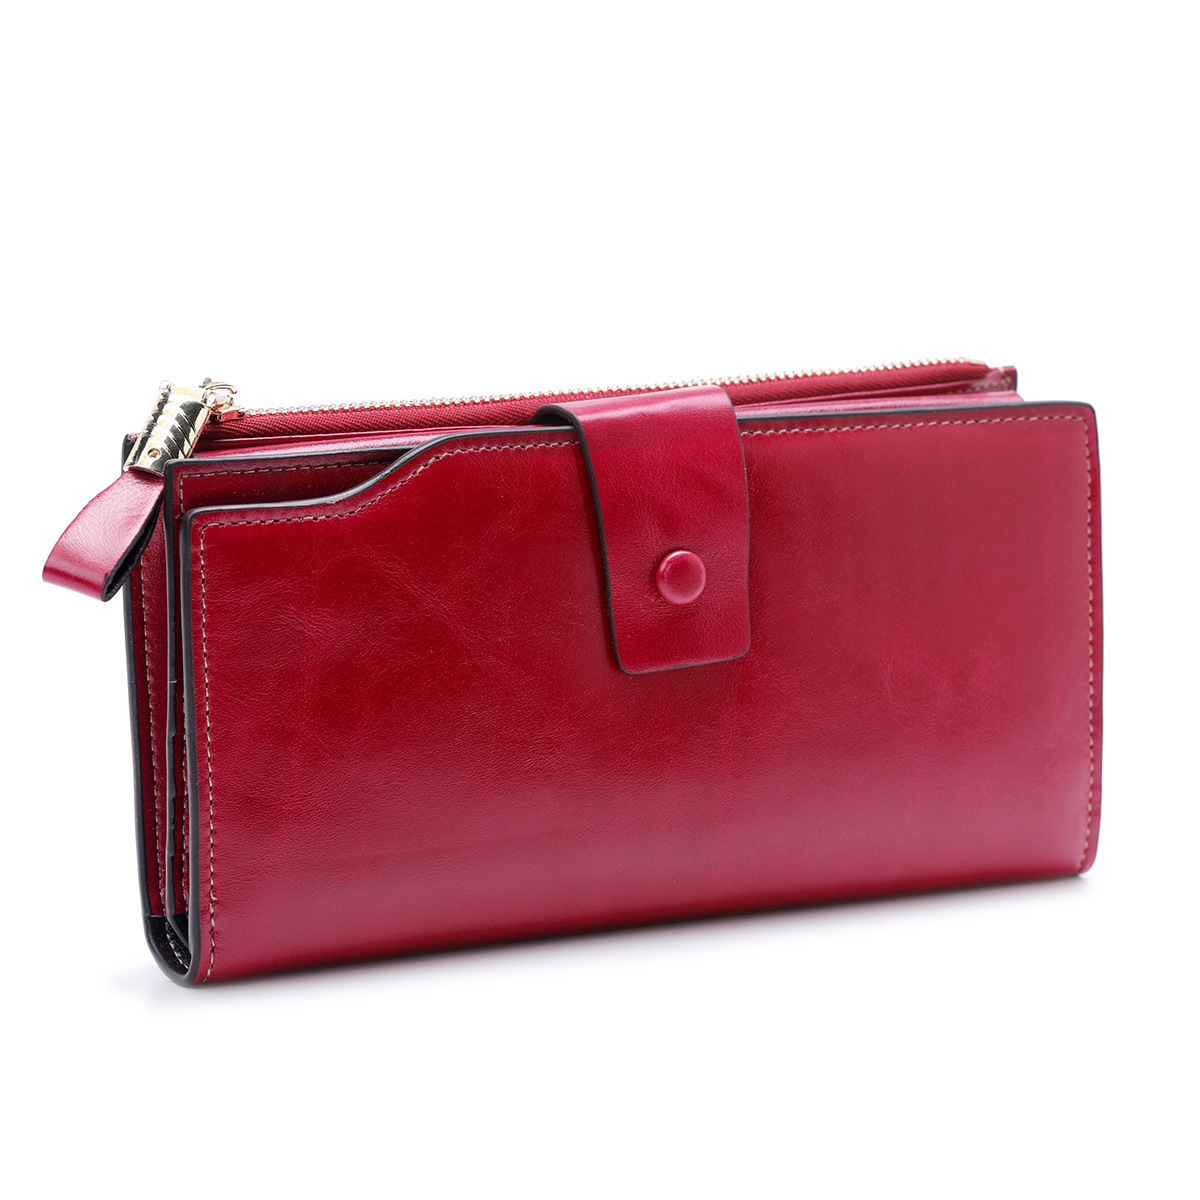 Fashion Long Women Wallet Genuine Leather Cell Phone Pocket Wallet For Women Purse Coin Purse Card Holder Carteira Feminina 2017 fashion new leather purse for women high quality long women wallets with zipper coin pocket card holders carteira feminina